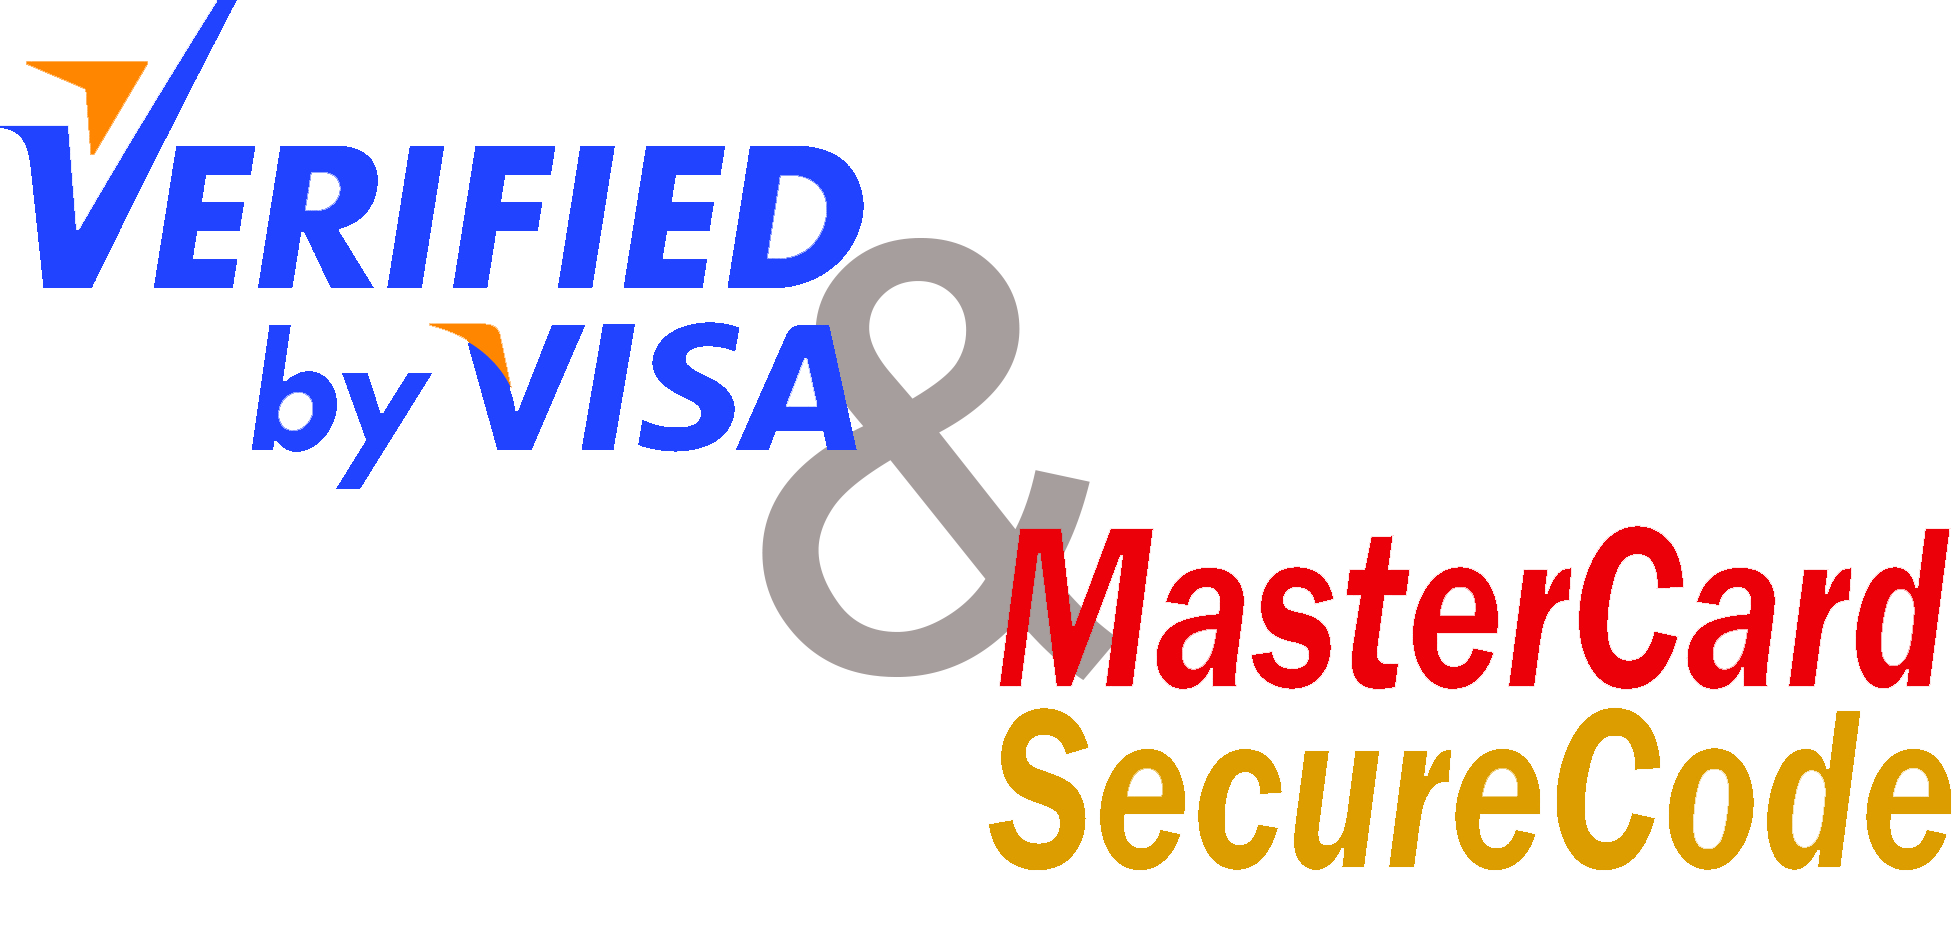 Verified by Visa Mastercard SecureCode